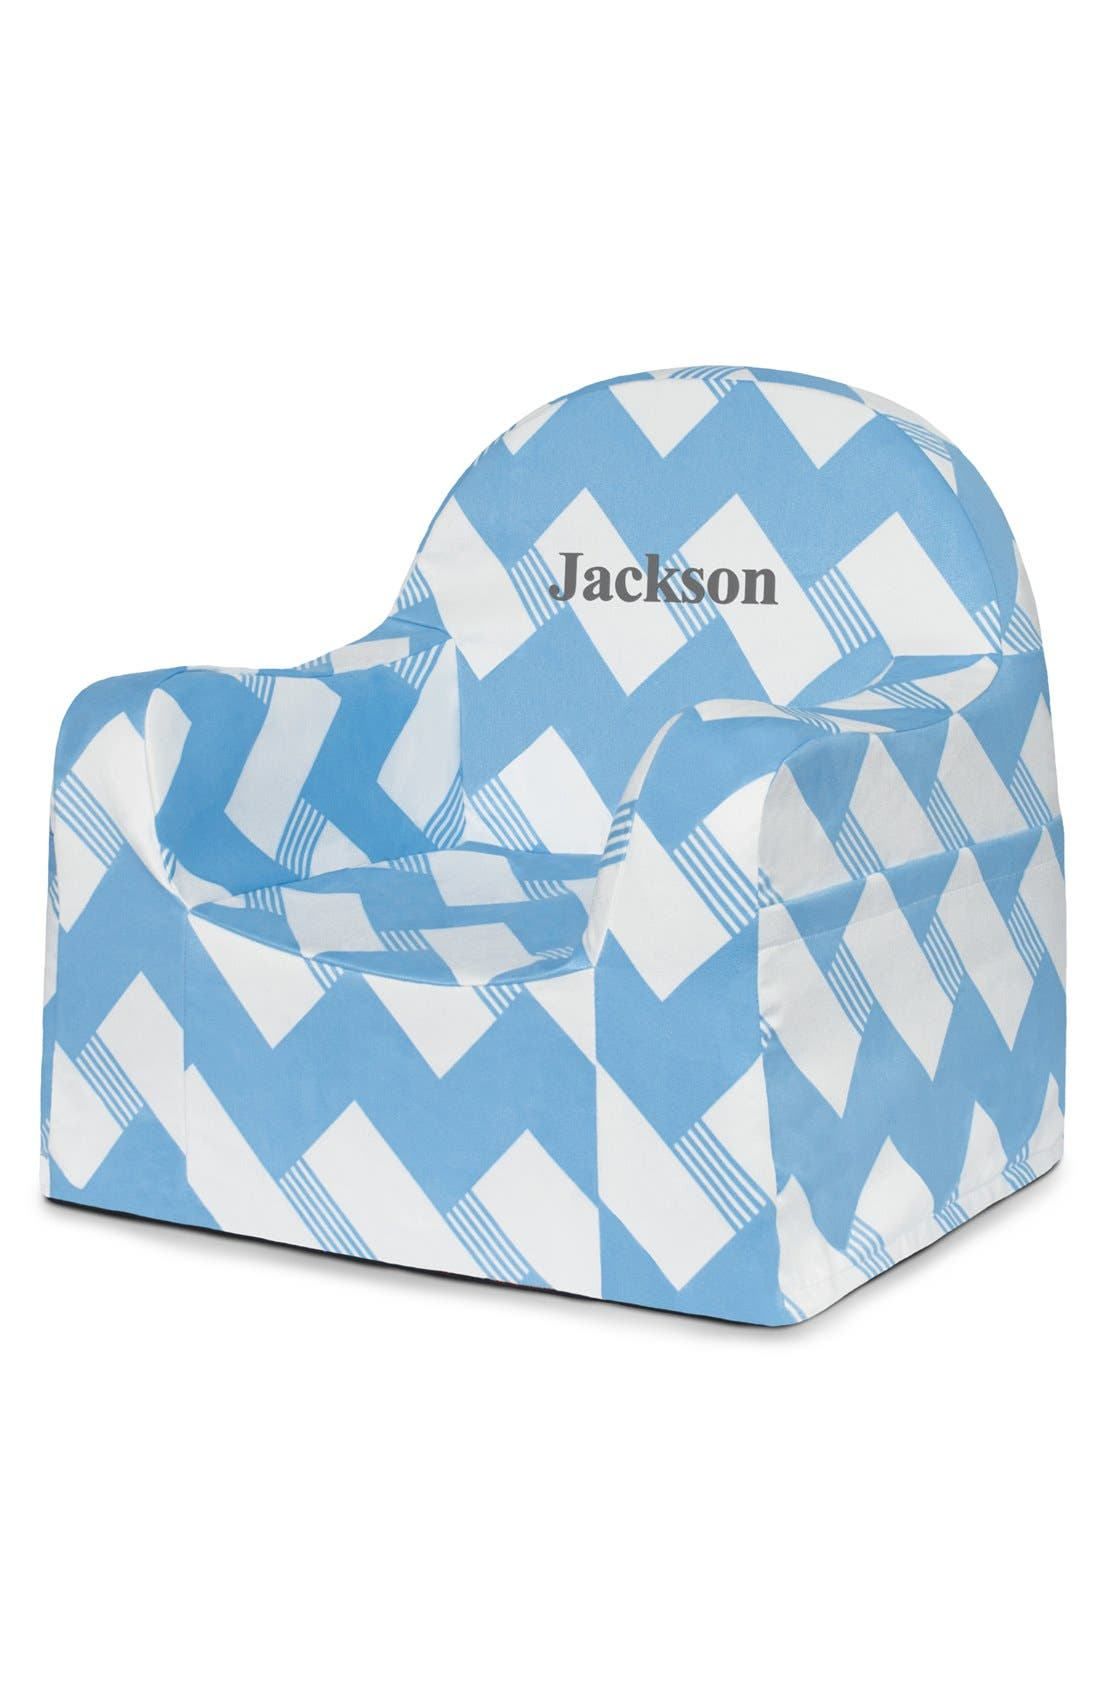 'Personalized Little Reader' Chair,                         Main,                         color, Zigzag Blue